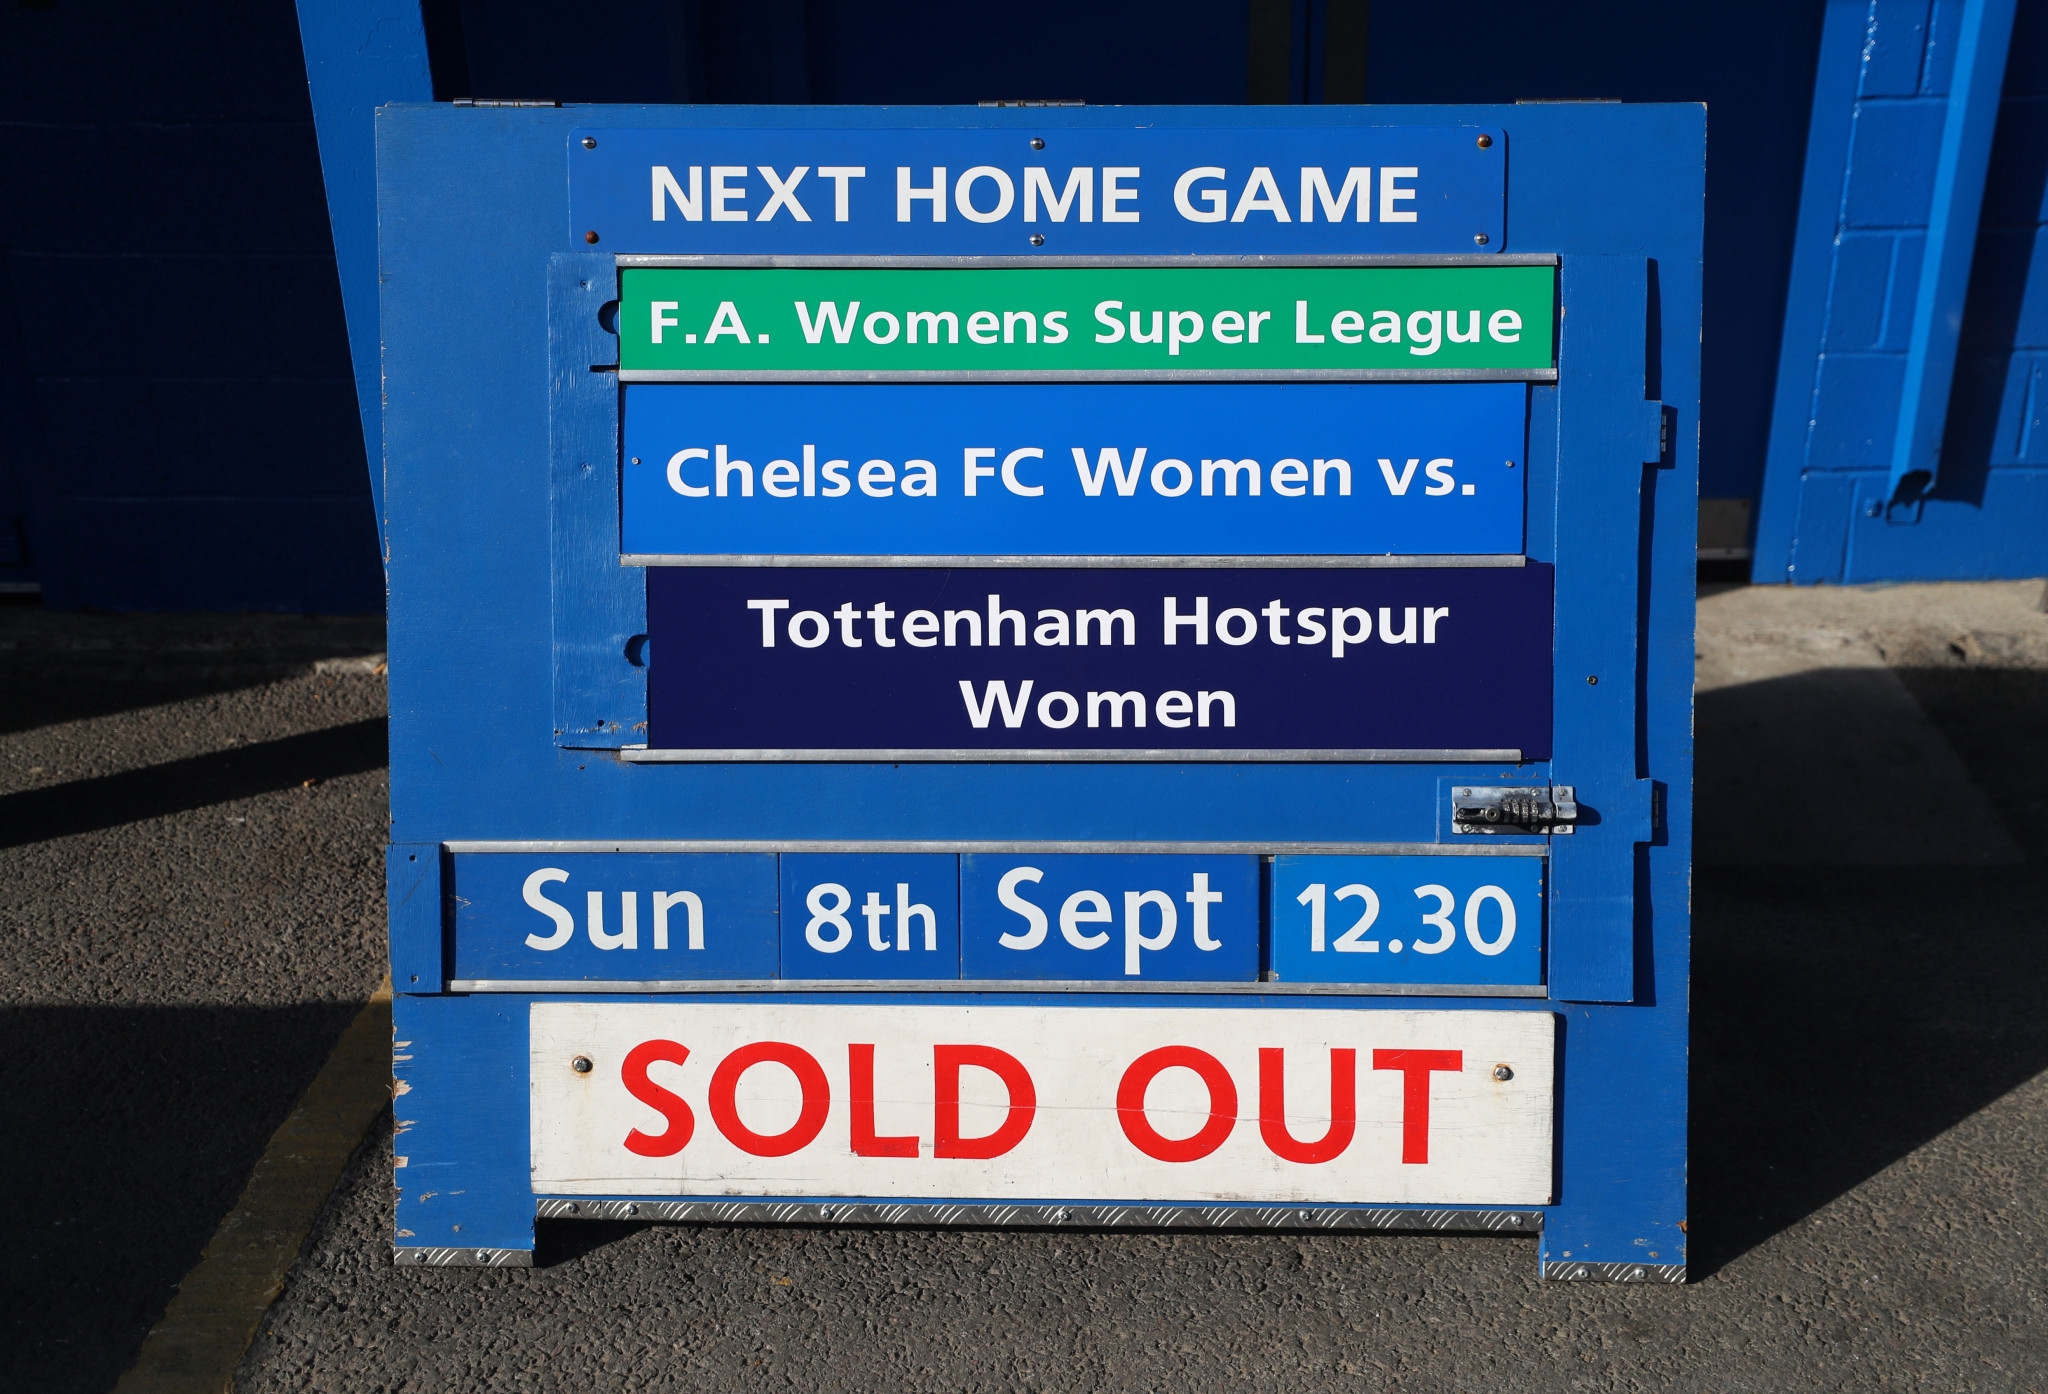 The FA Women's Super League match between Chelsea and Tottenham Hotspur, which offered free tickets, was supposedly sold out ©Getty Images